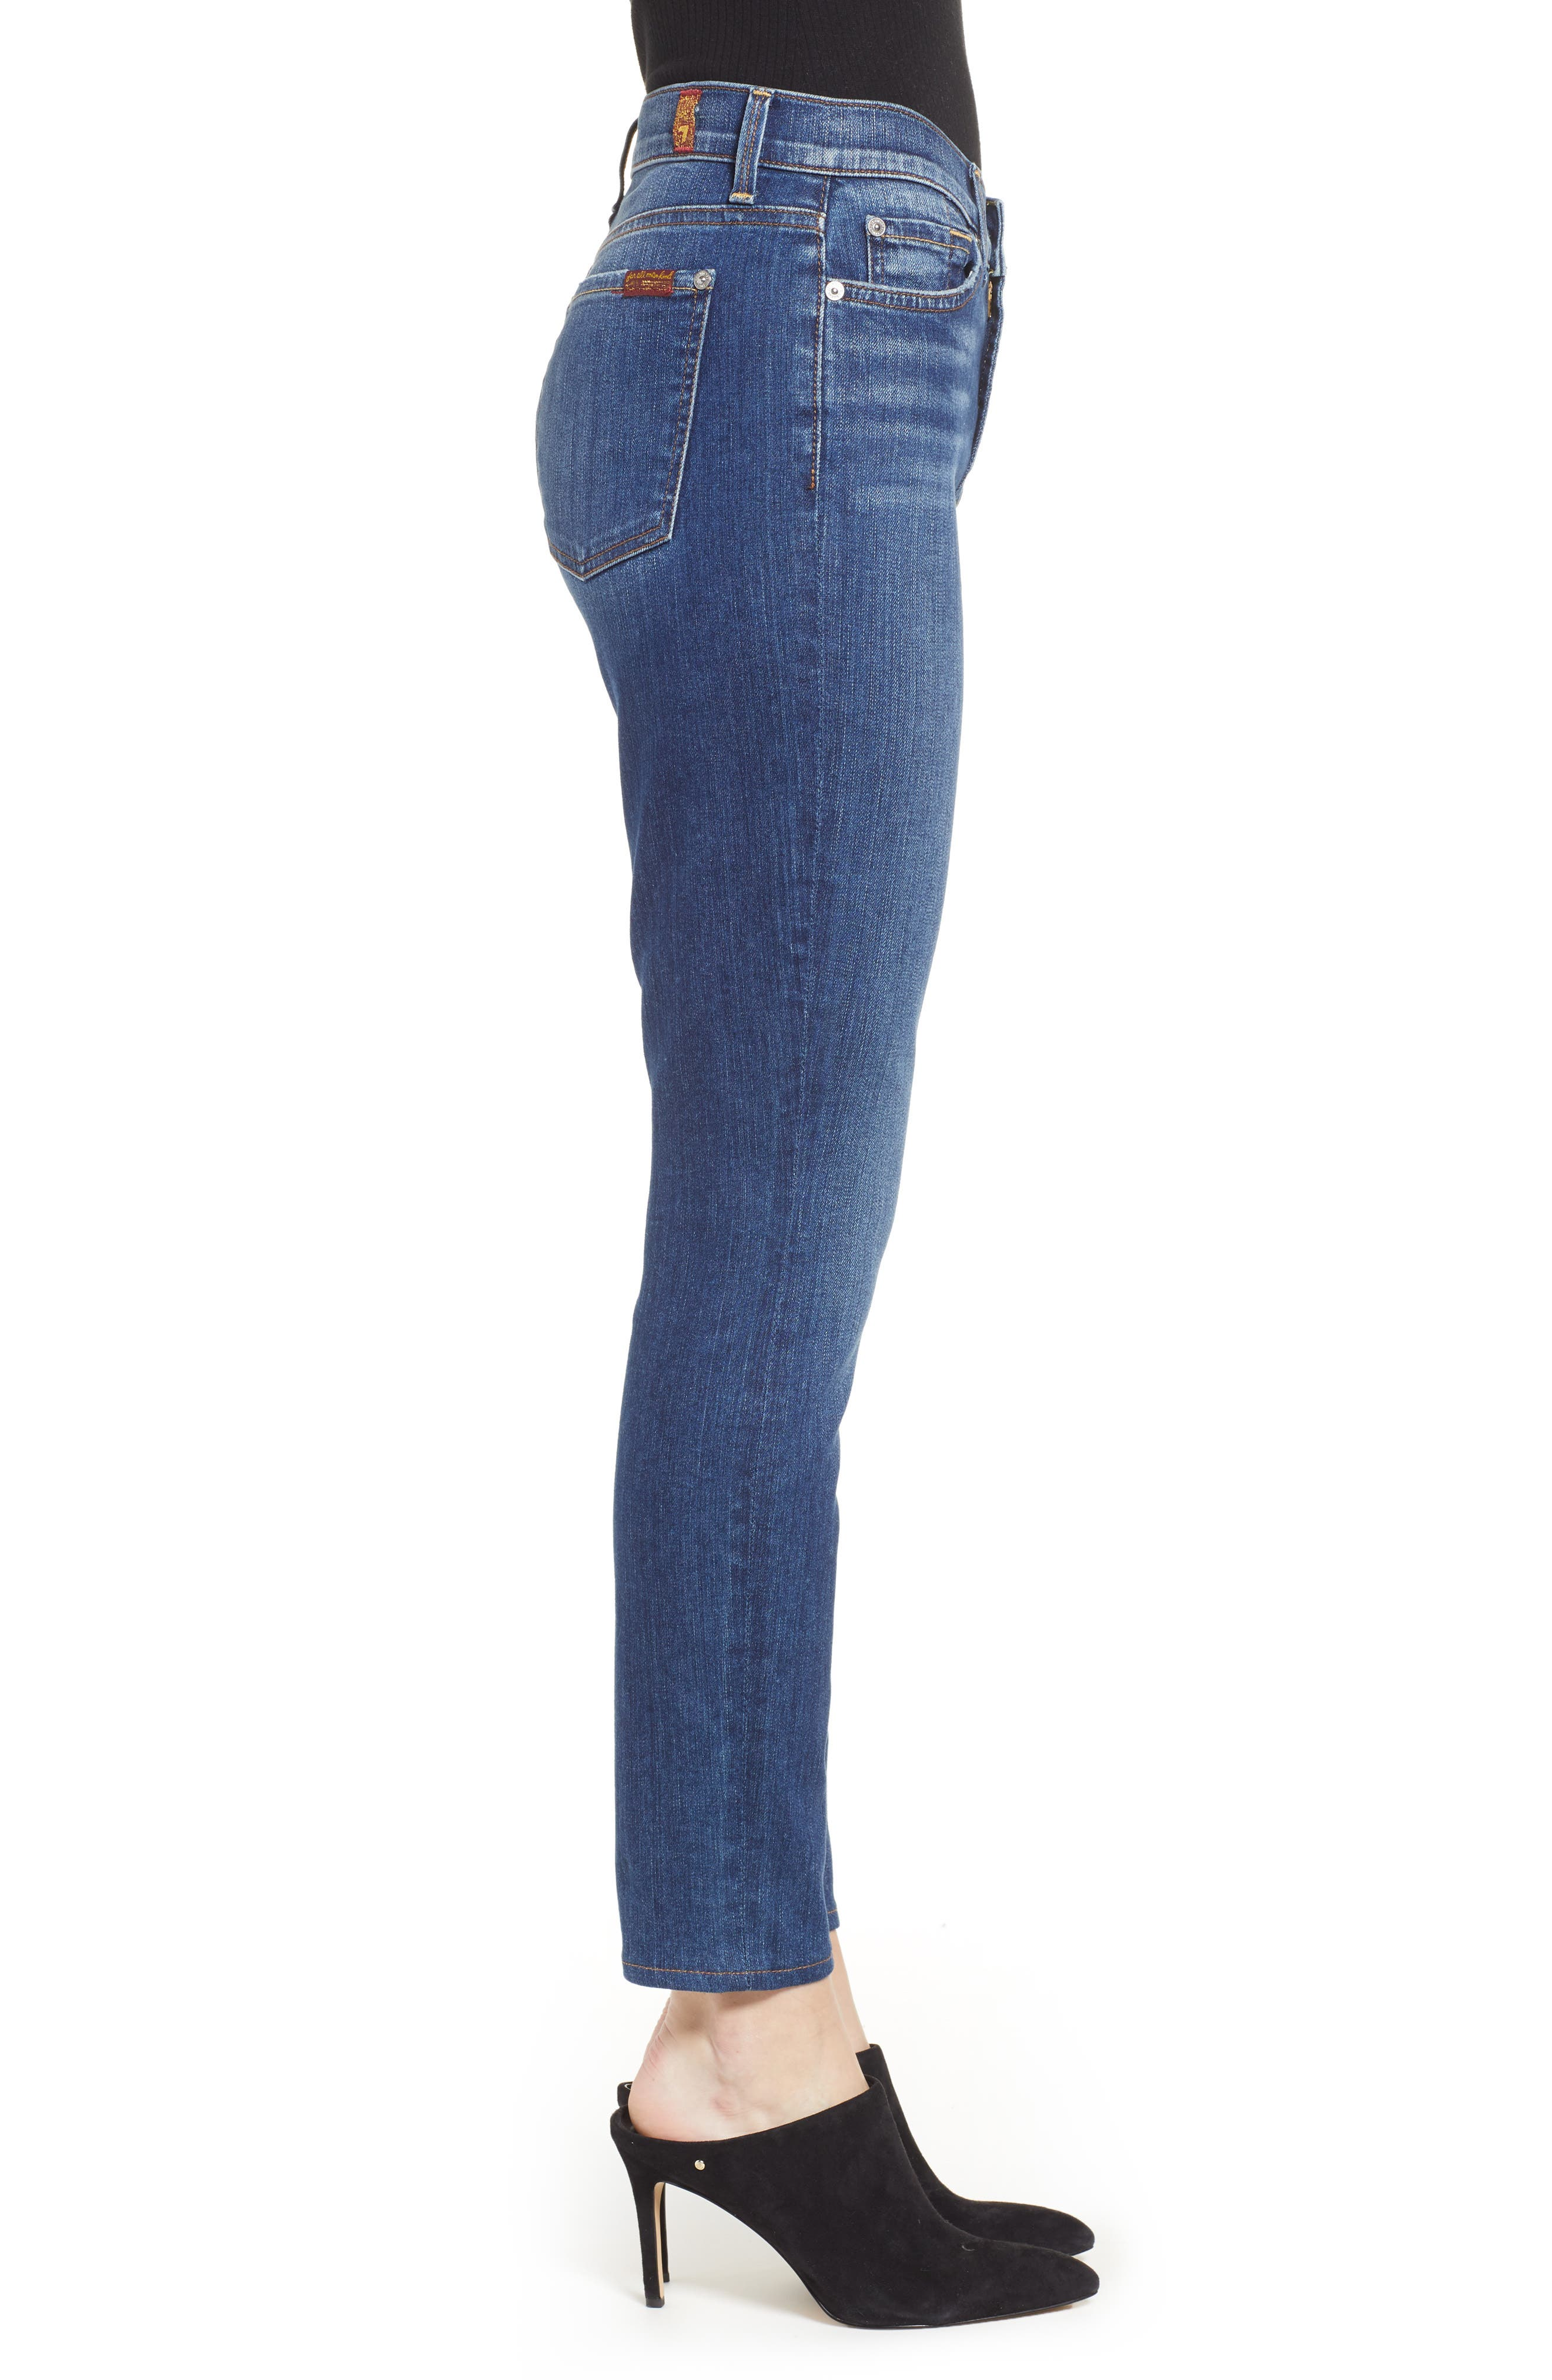 7 FOR ALL MANKIND<SUP>®</SUP>, The Ankle Skinny Jeans, Alternate thumbnail 4, color, ALLURING INDIGO